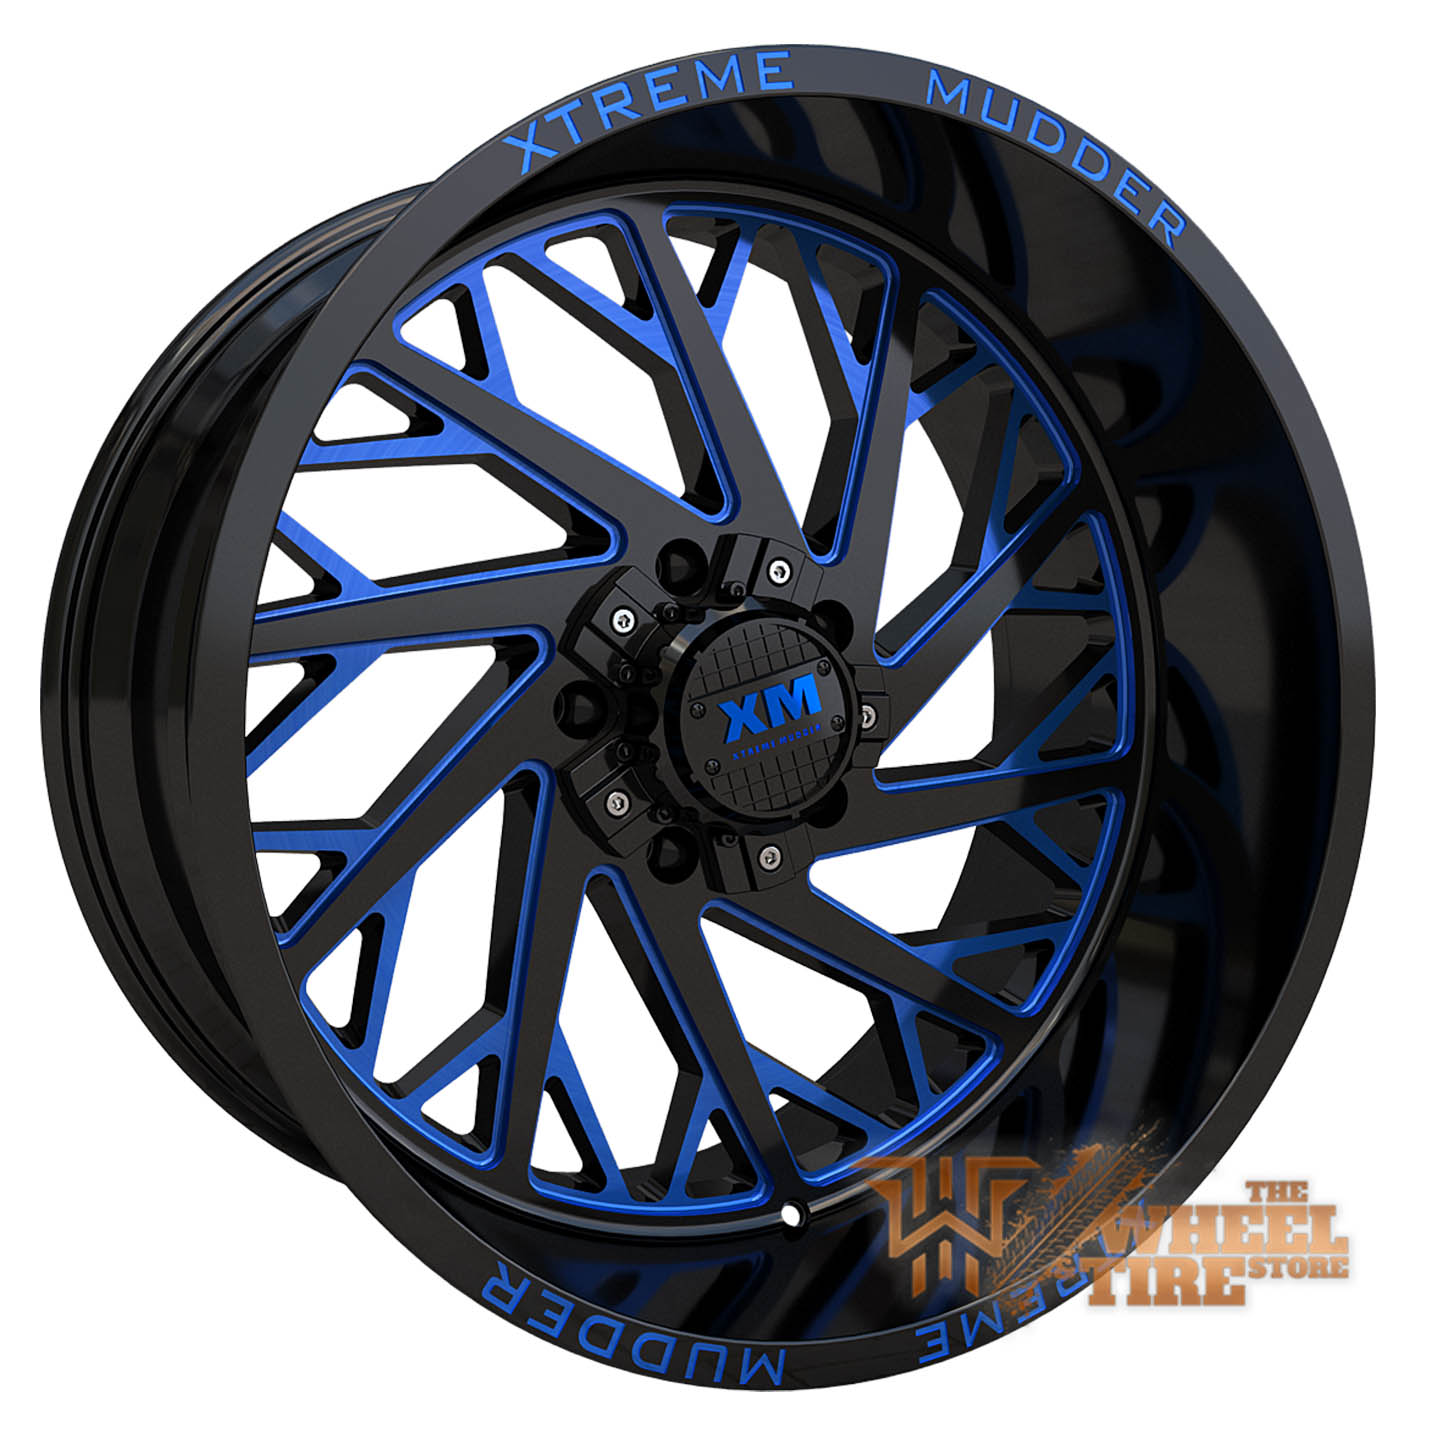 XTREME MUDDER XM-400 Wheel in Gloss Black Blue Milled